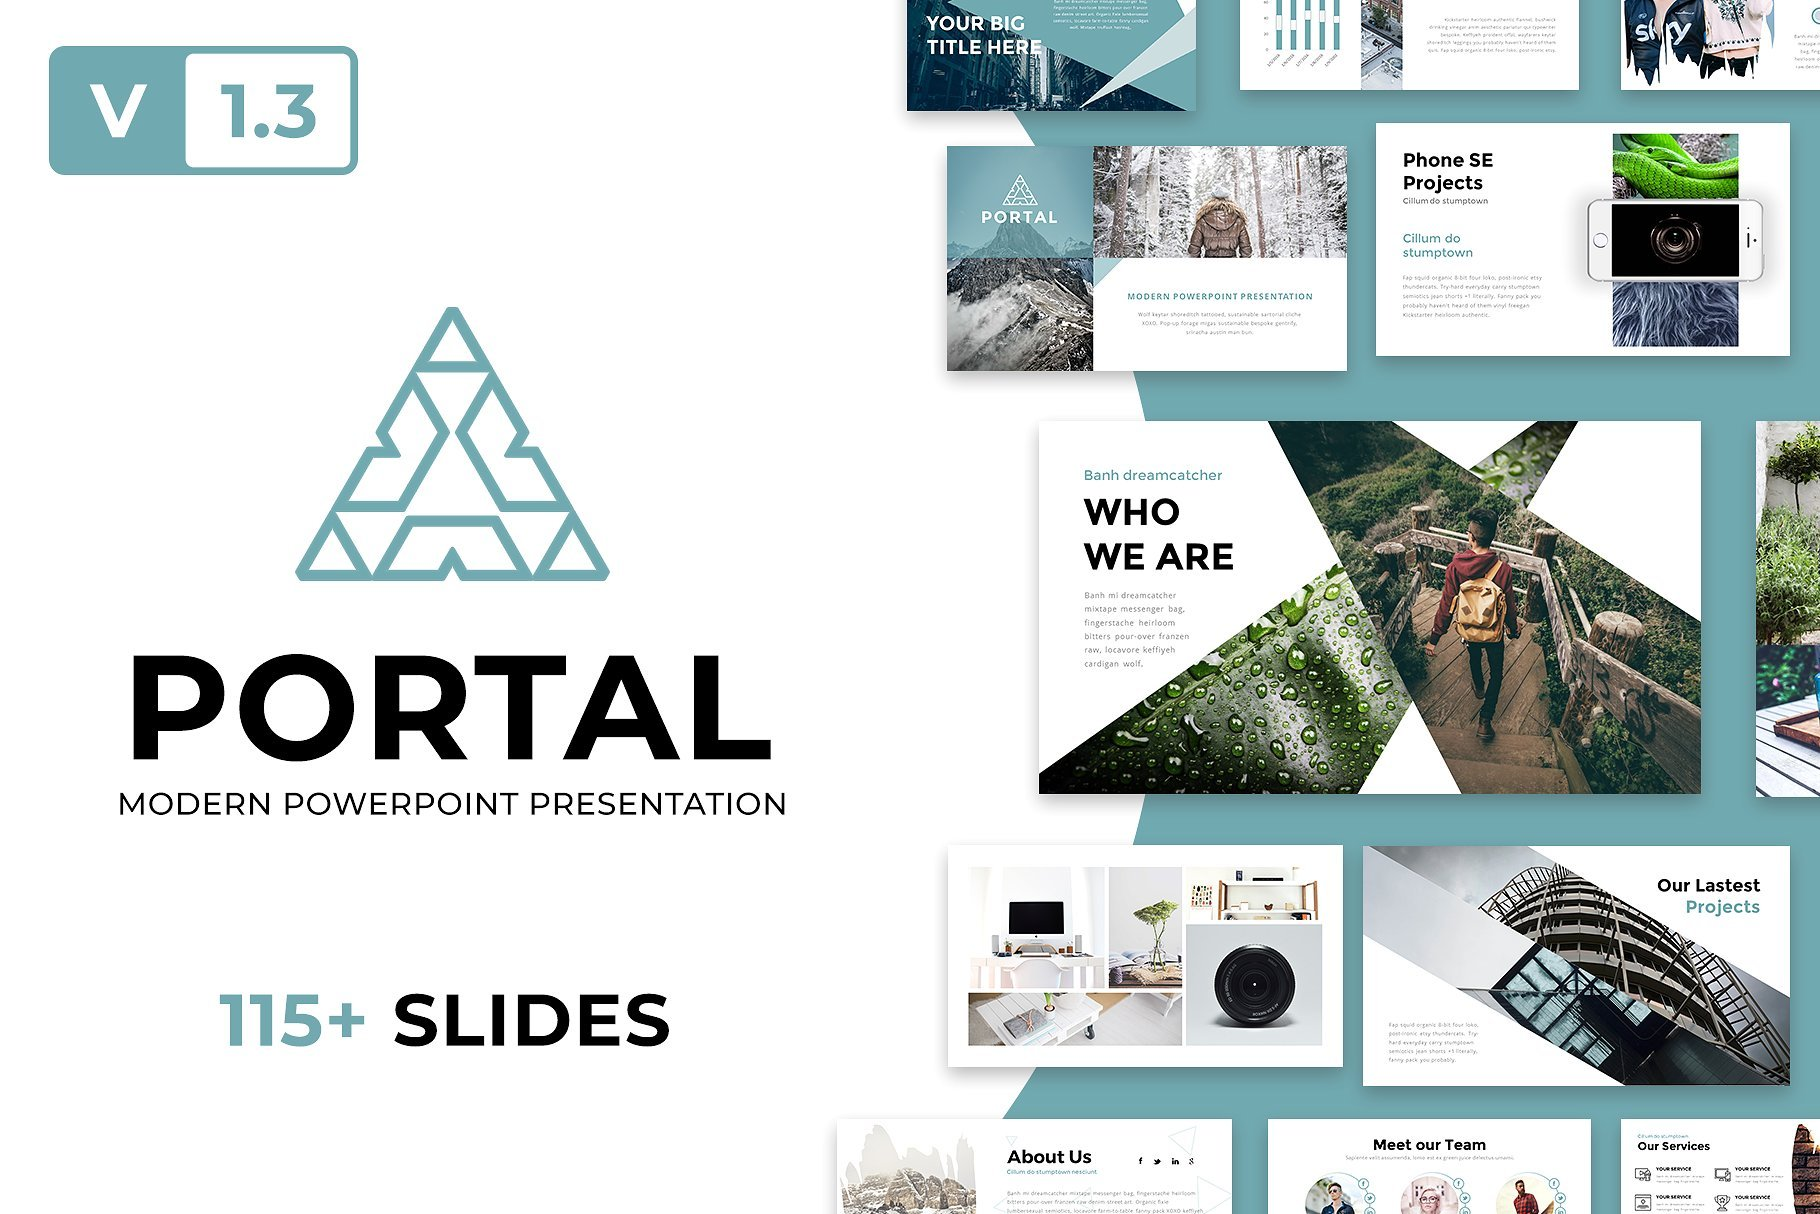 50 Creative PowerPoint Templates in 2020: Free And Premium. Best Creative Presentation Ideas - cm cover portal